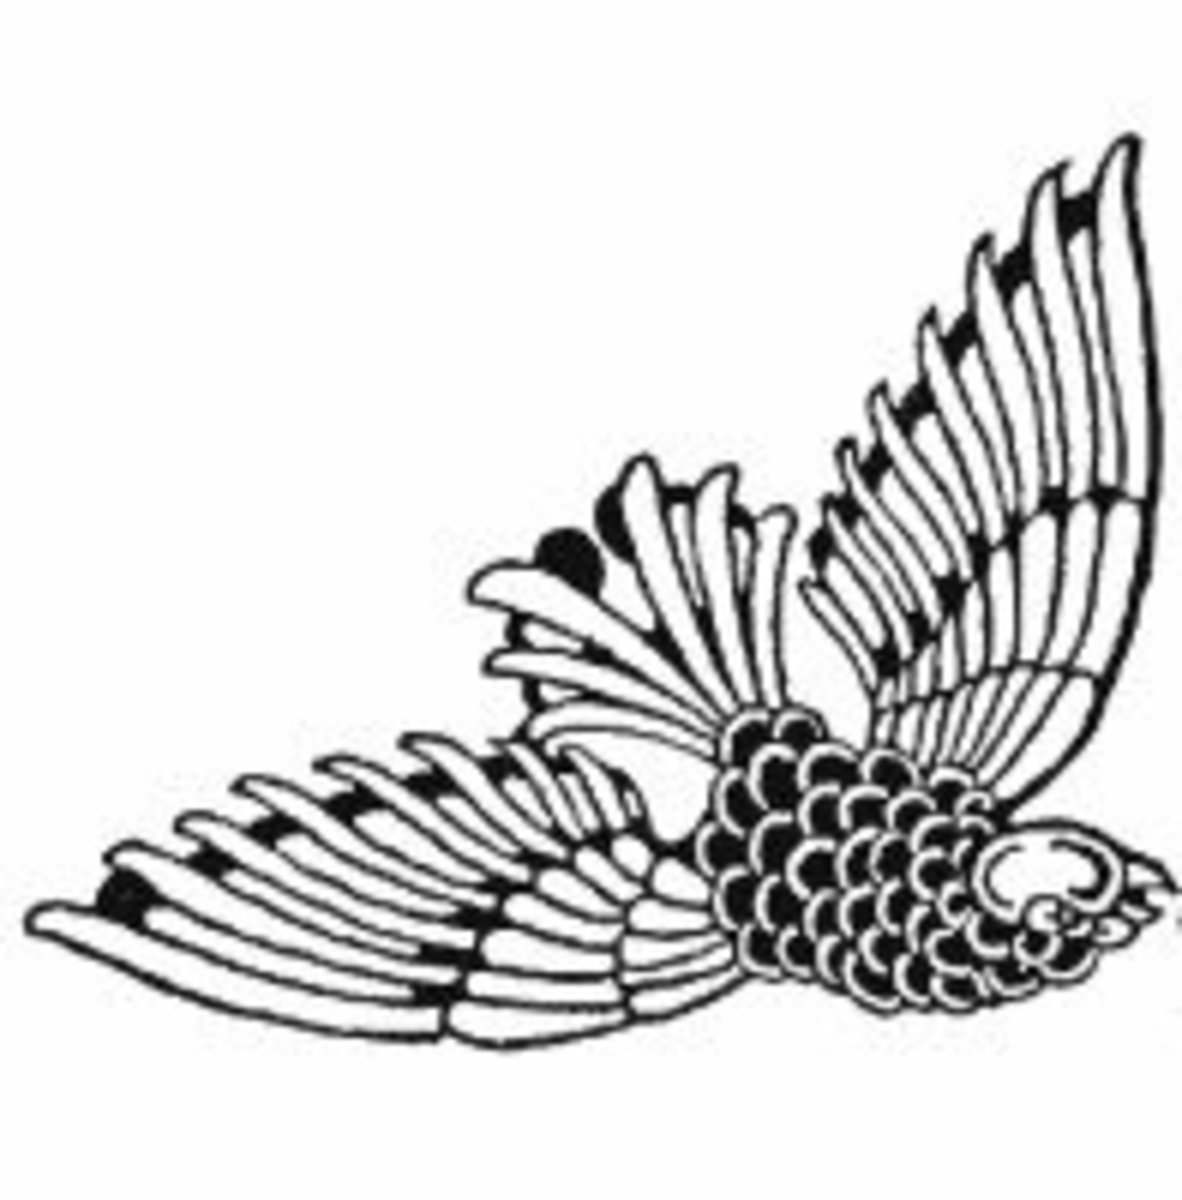 The stylization of the bird's feathers can be adapted to angel wings if you don't use birds in your Christmas decorations already.